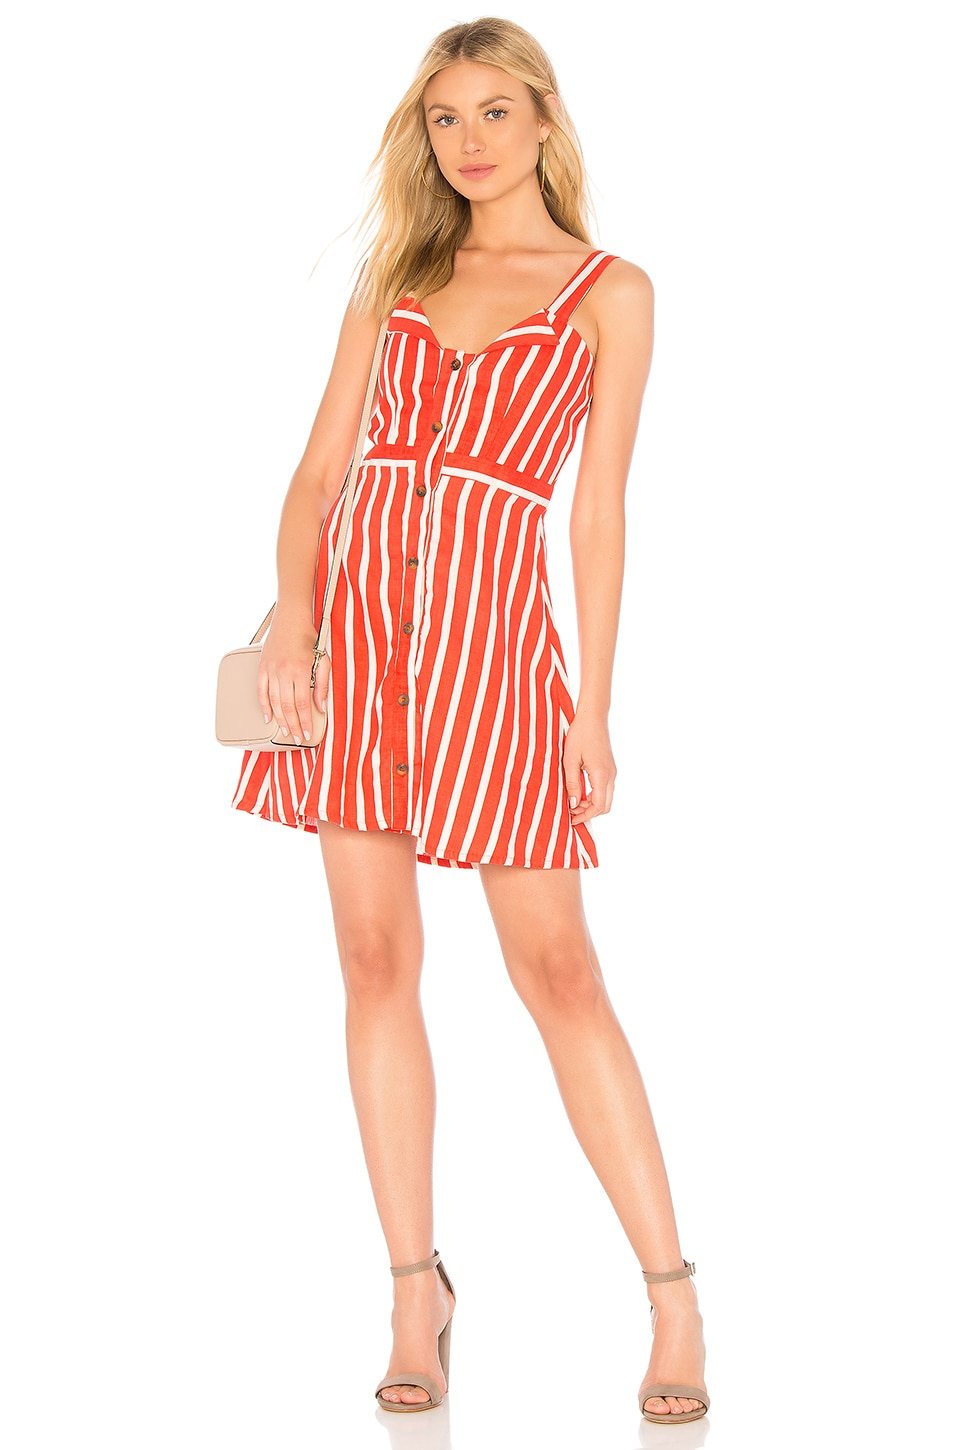 FAITHFULL THE BRAND Le Petite Dress in Tangerine Mazur Stripe